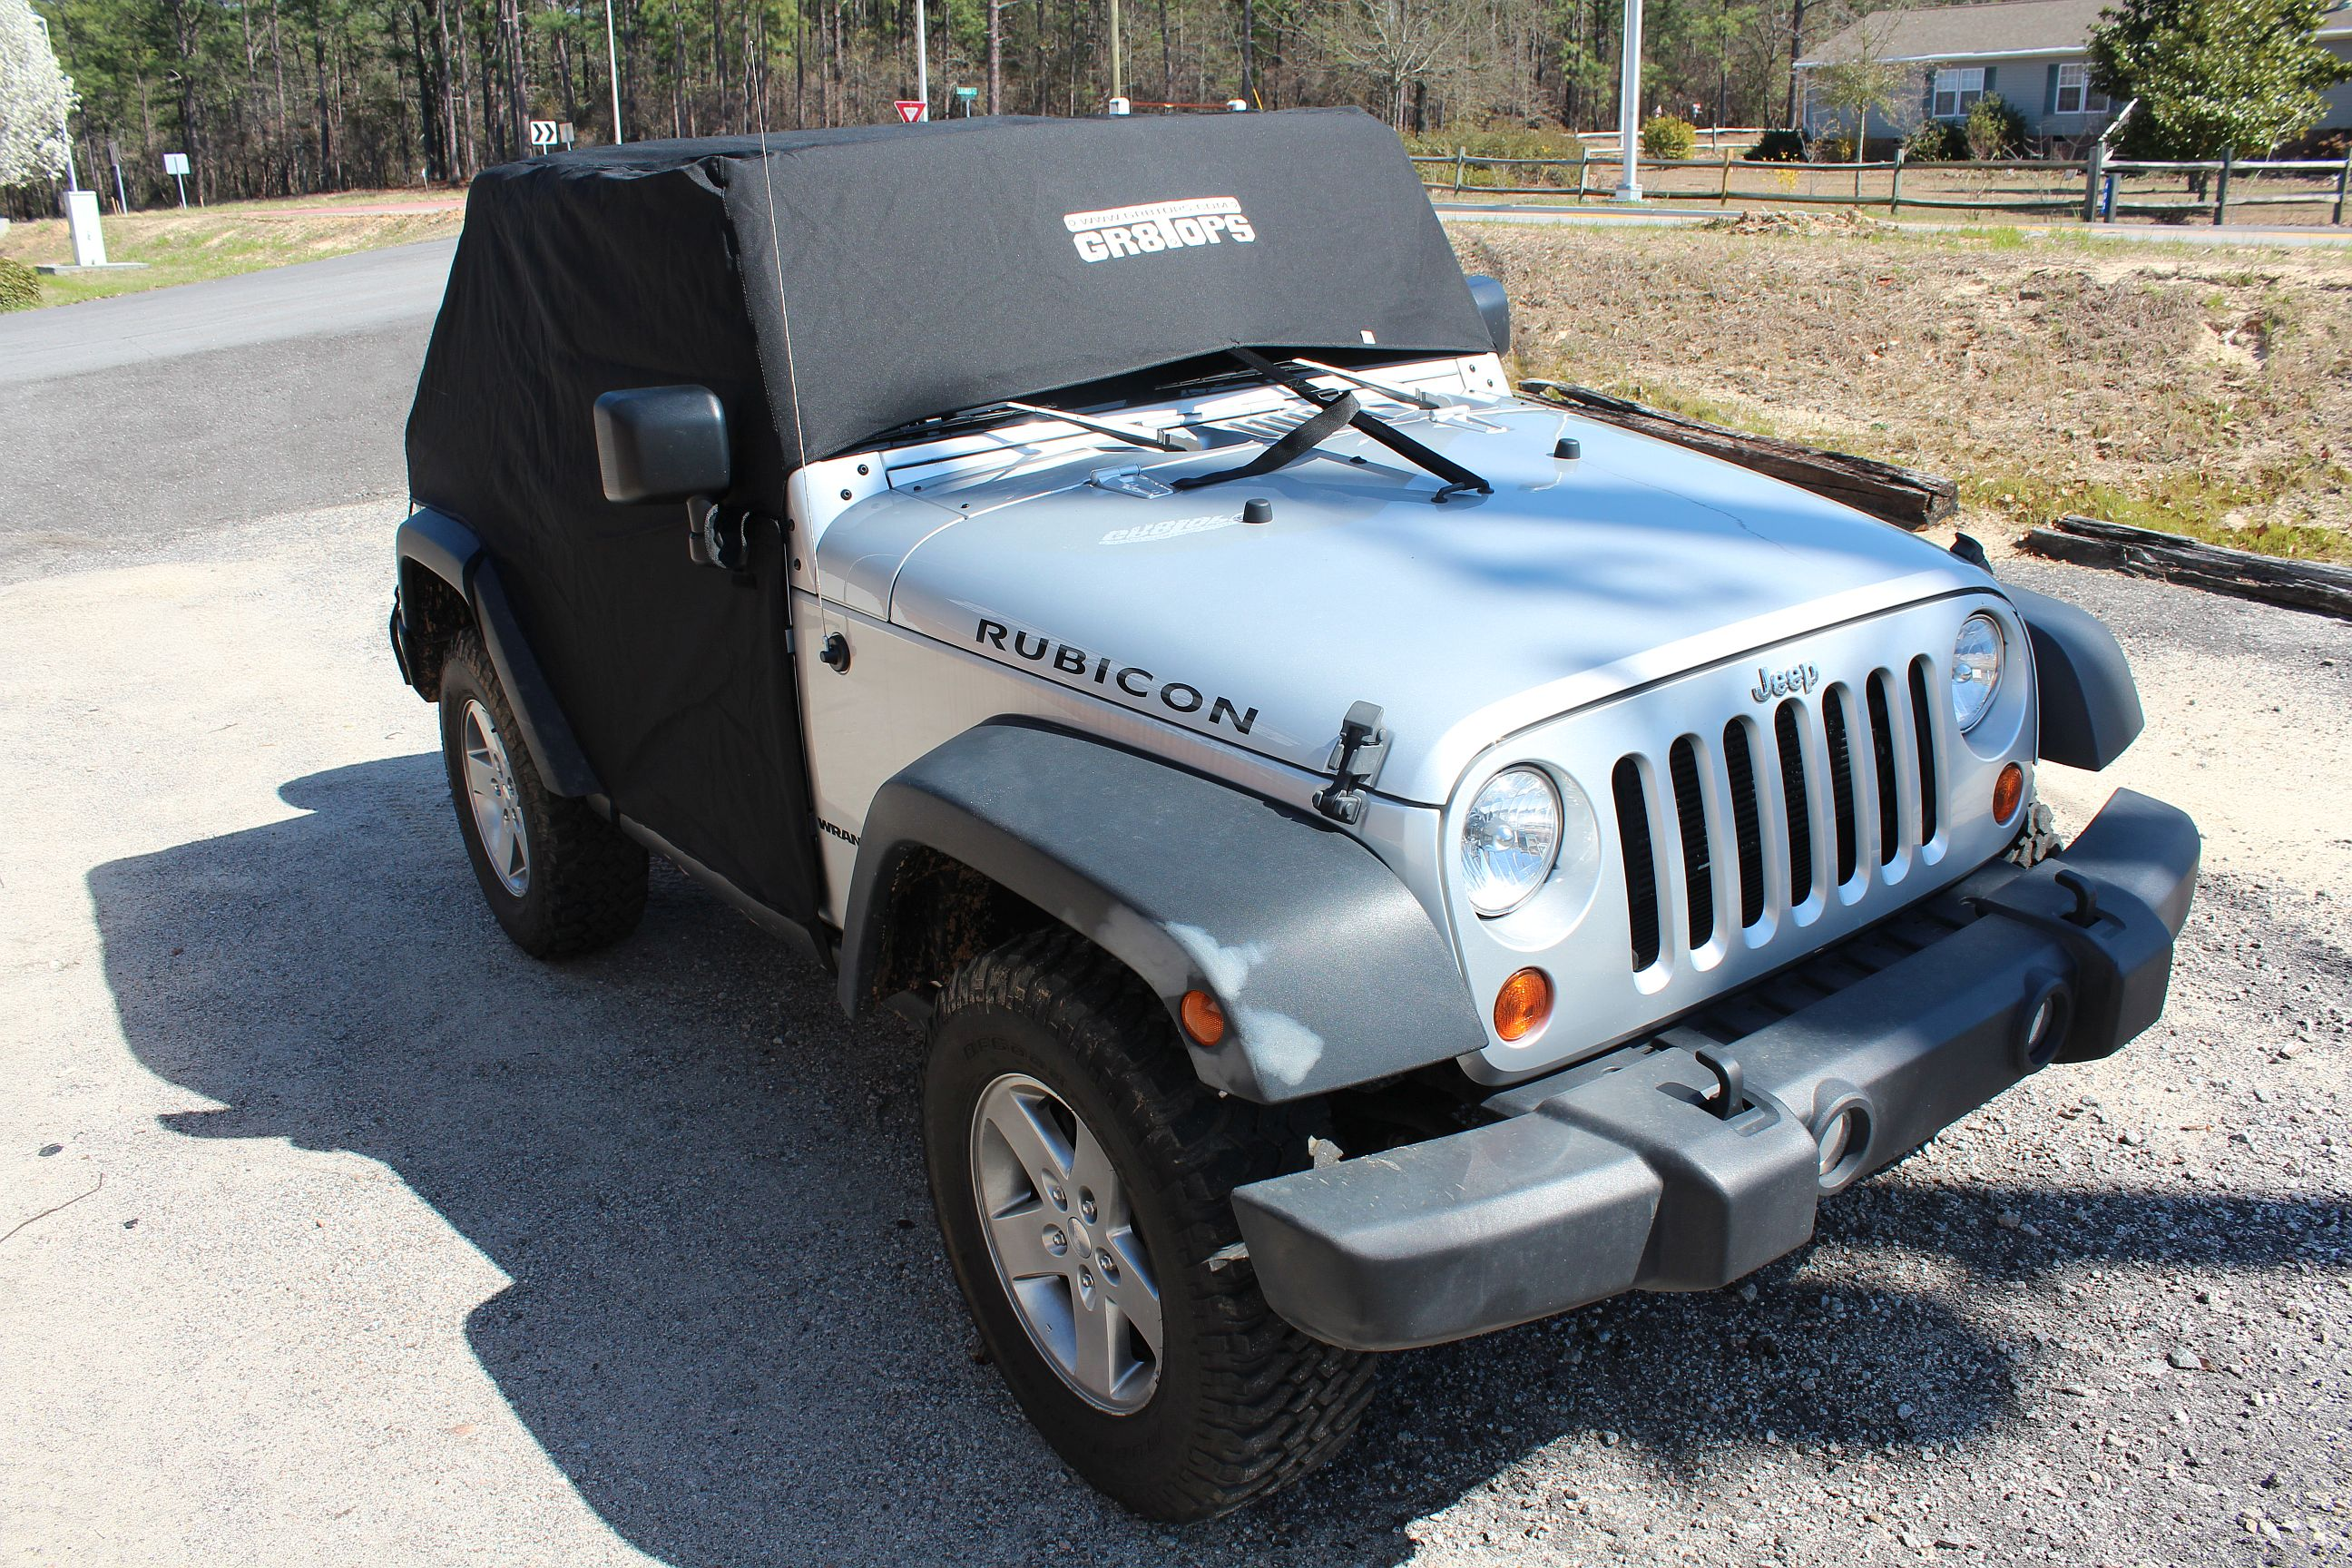 jeep sale door for x doors on photo wrangler latest of fbffdebfeffddbf jeeps rubicon